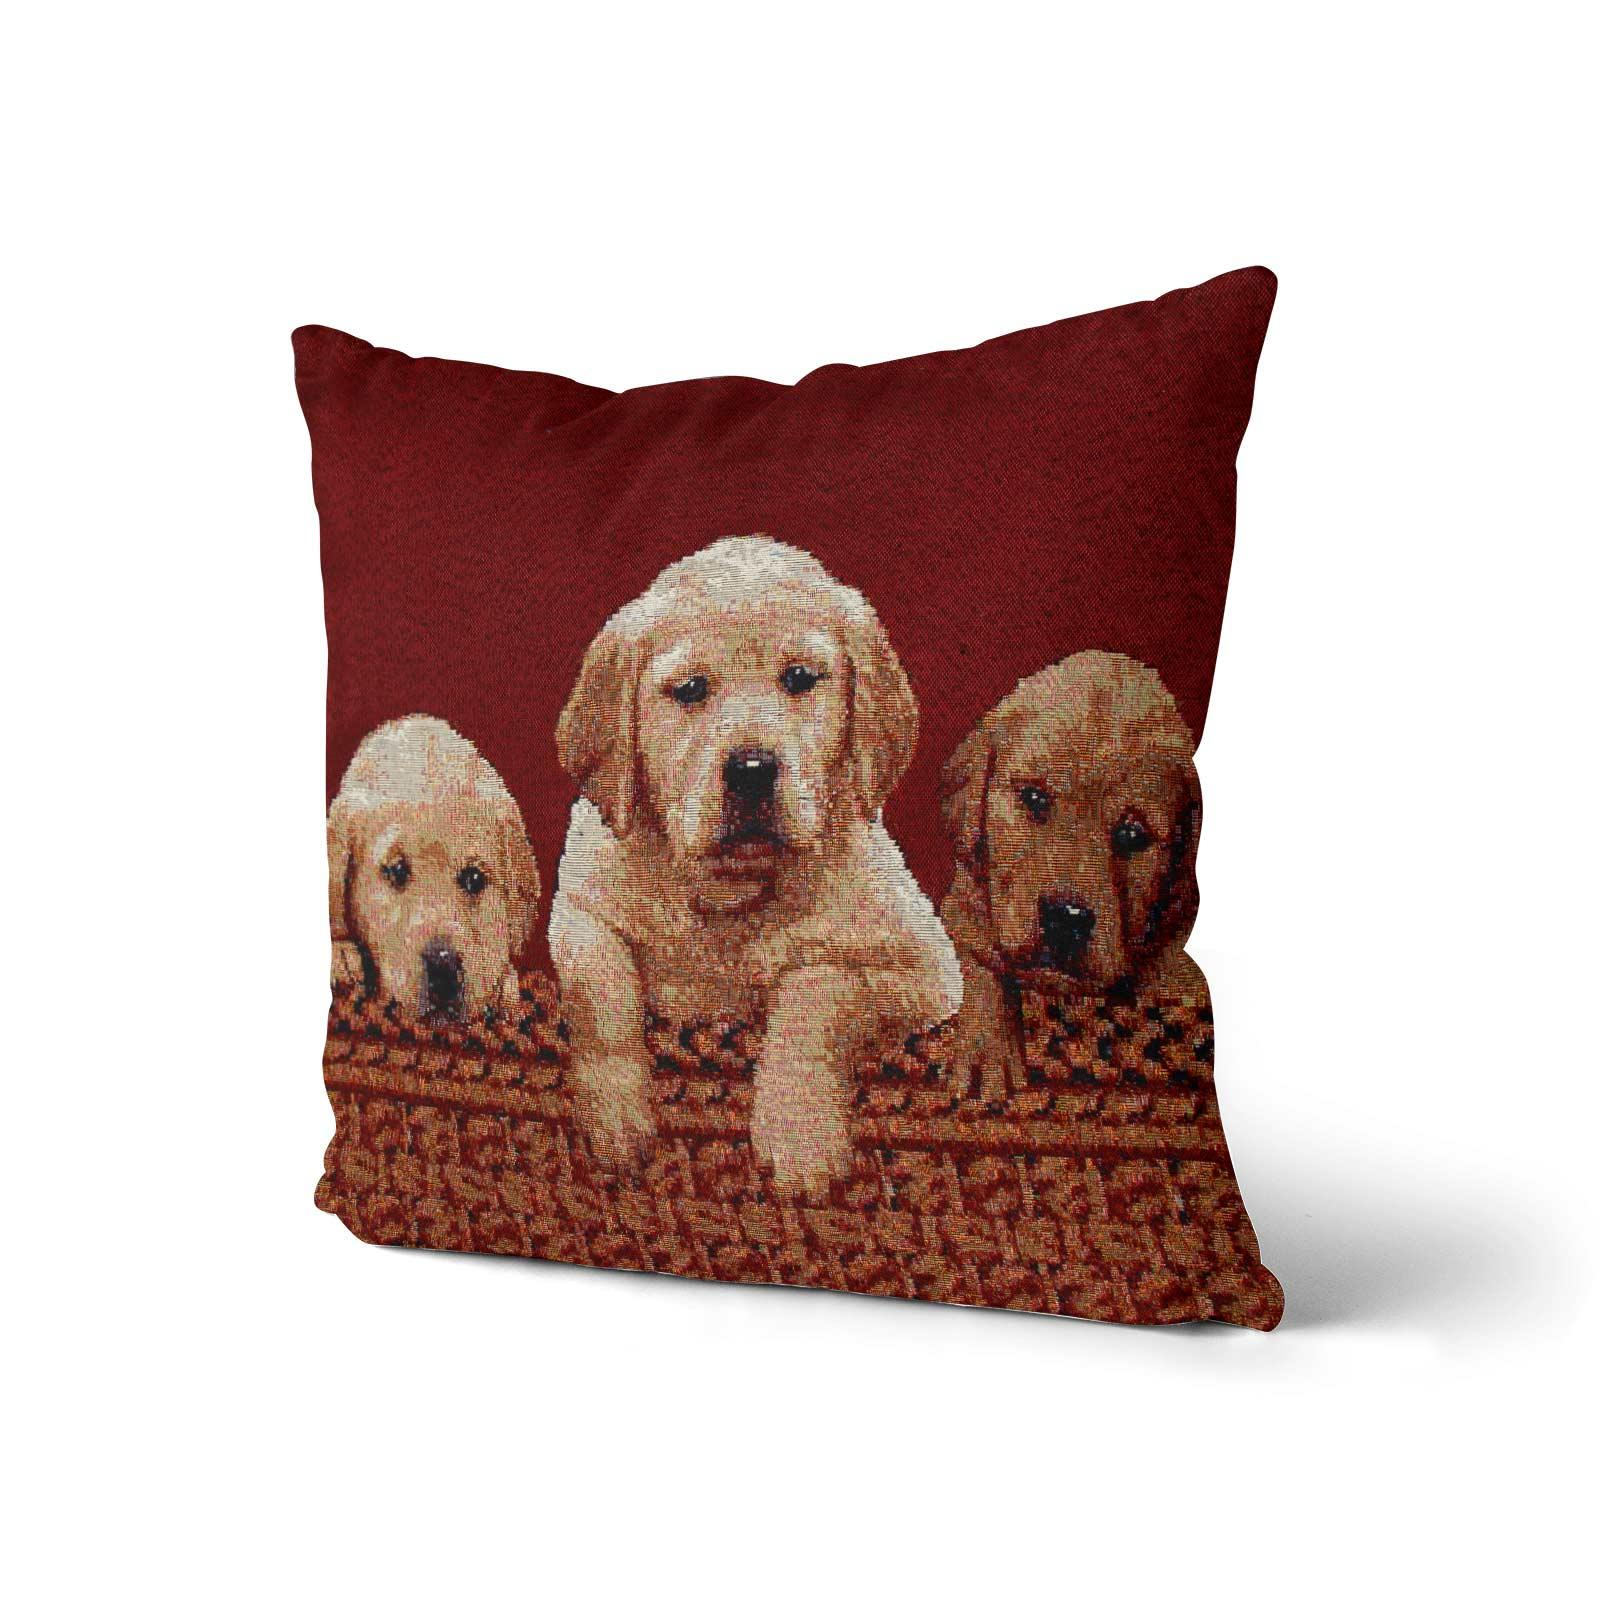 Tapestry-Cushion-Covers-Vintage-Pillow-Cover-Collection-18-034-45cm-Filled-Cushions thumbnail 104